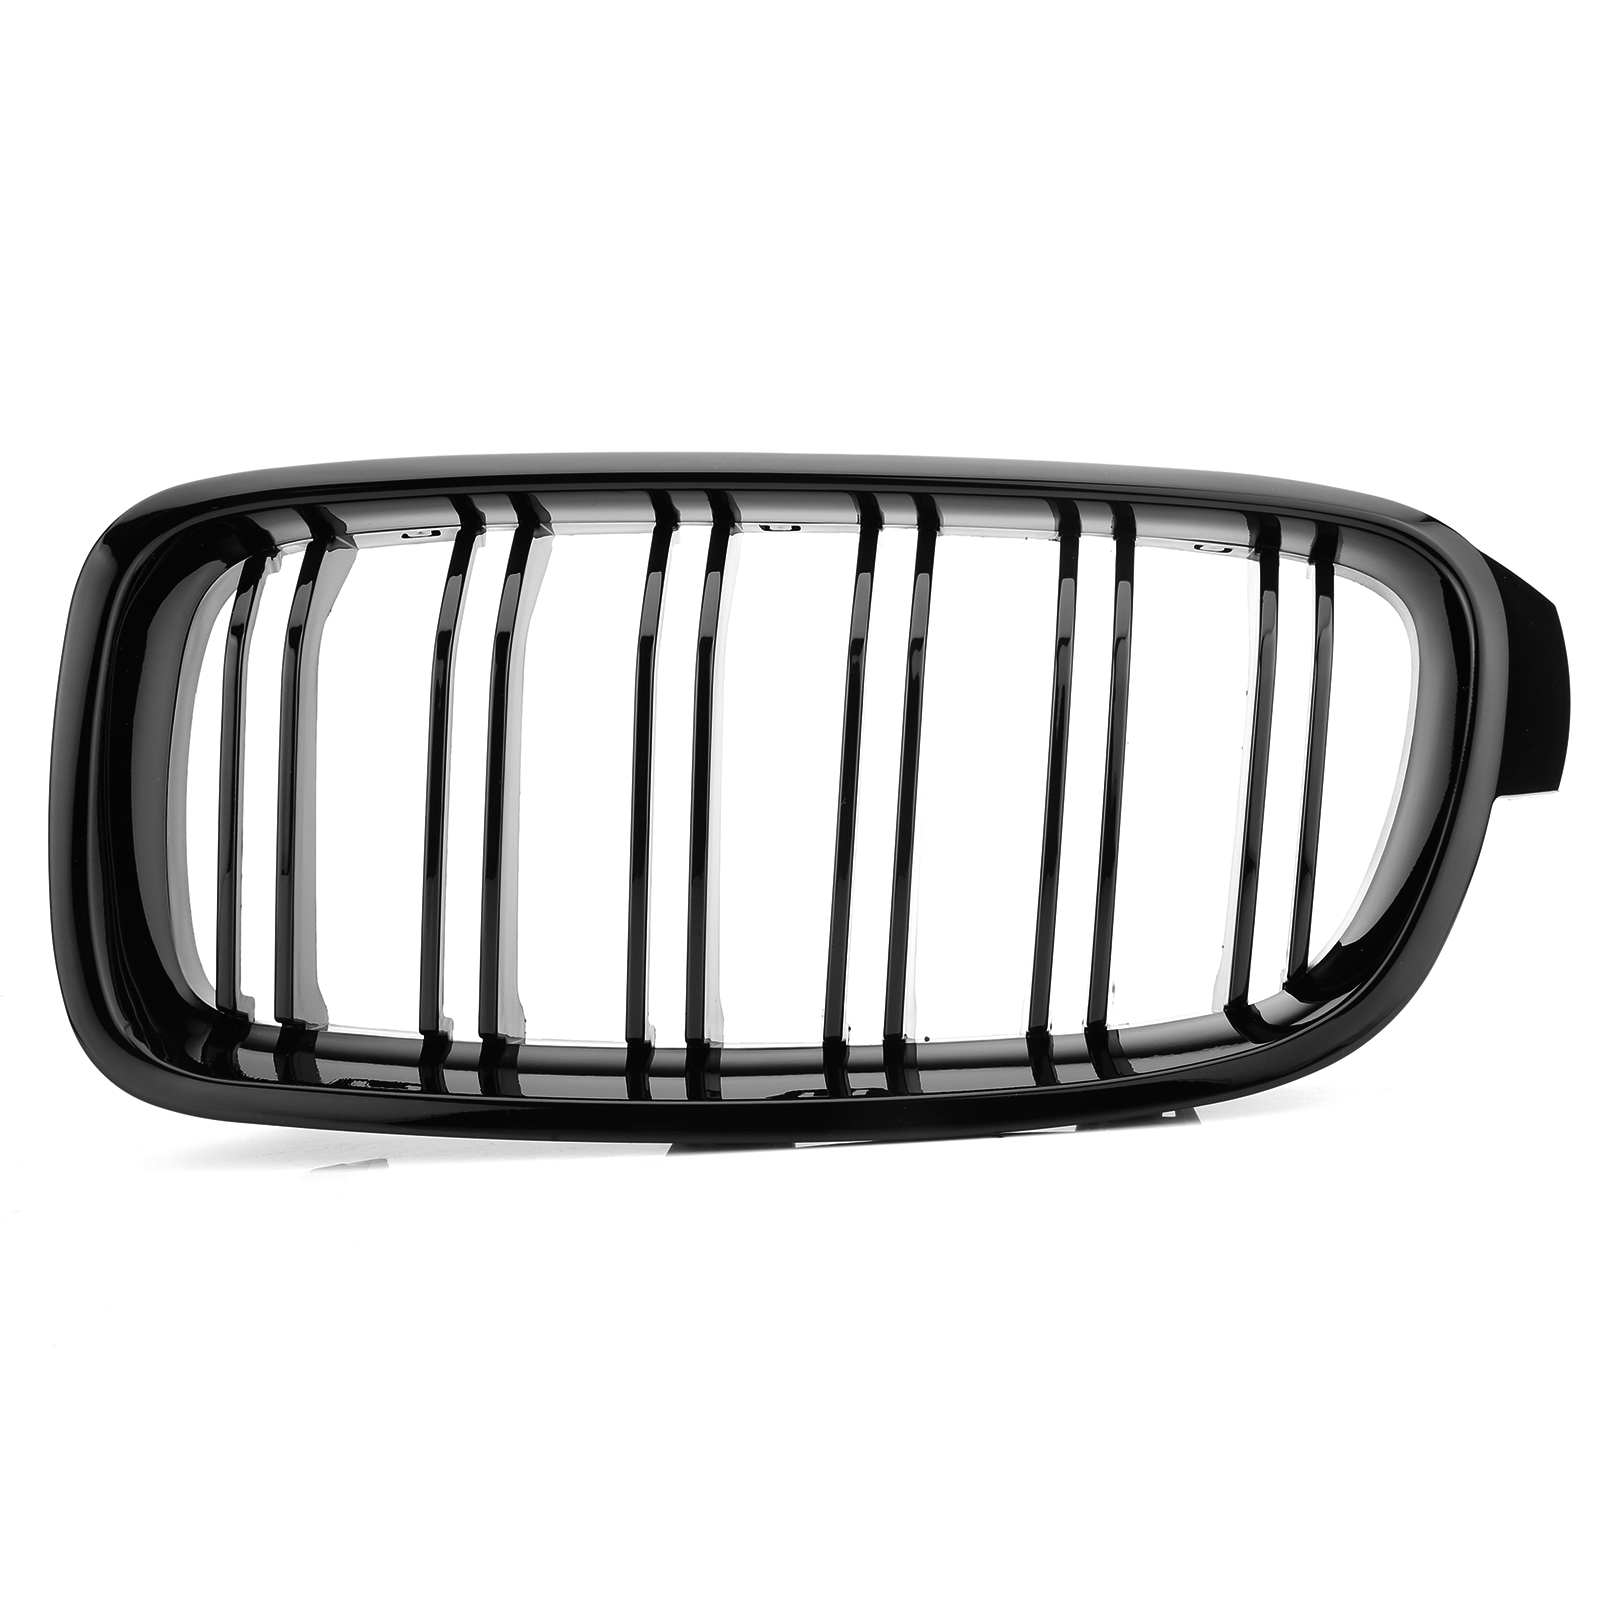 2 Front Kidney Grille For Bmw 3 Series F30 F31 F35 16